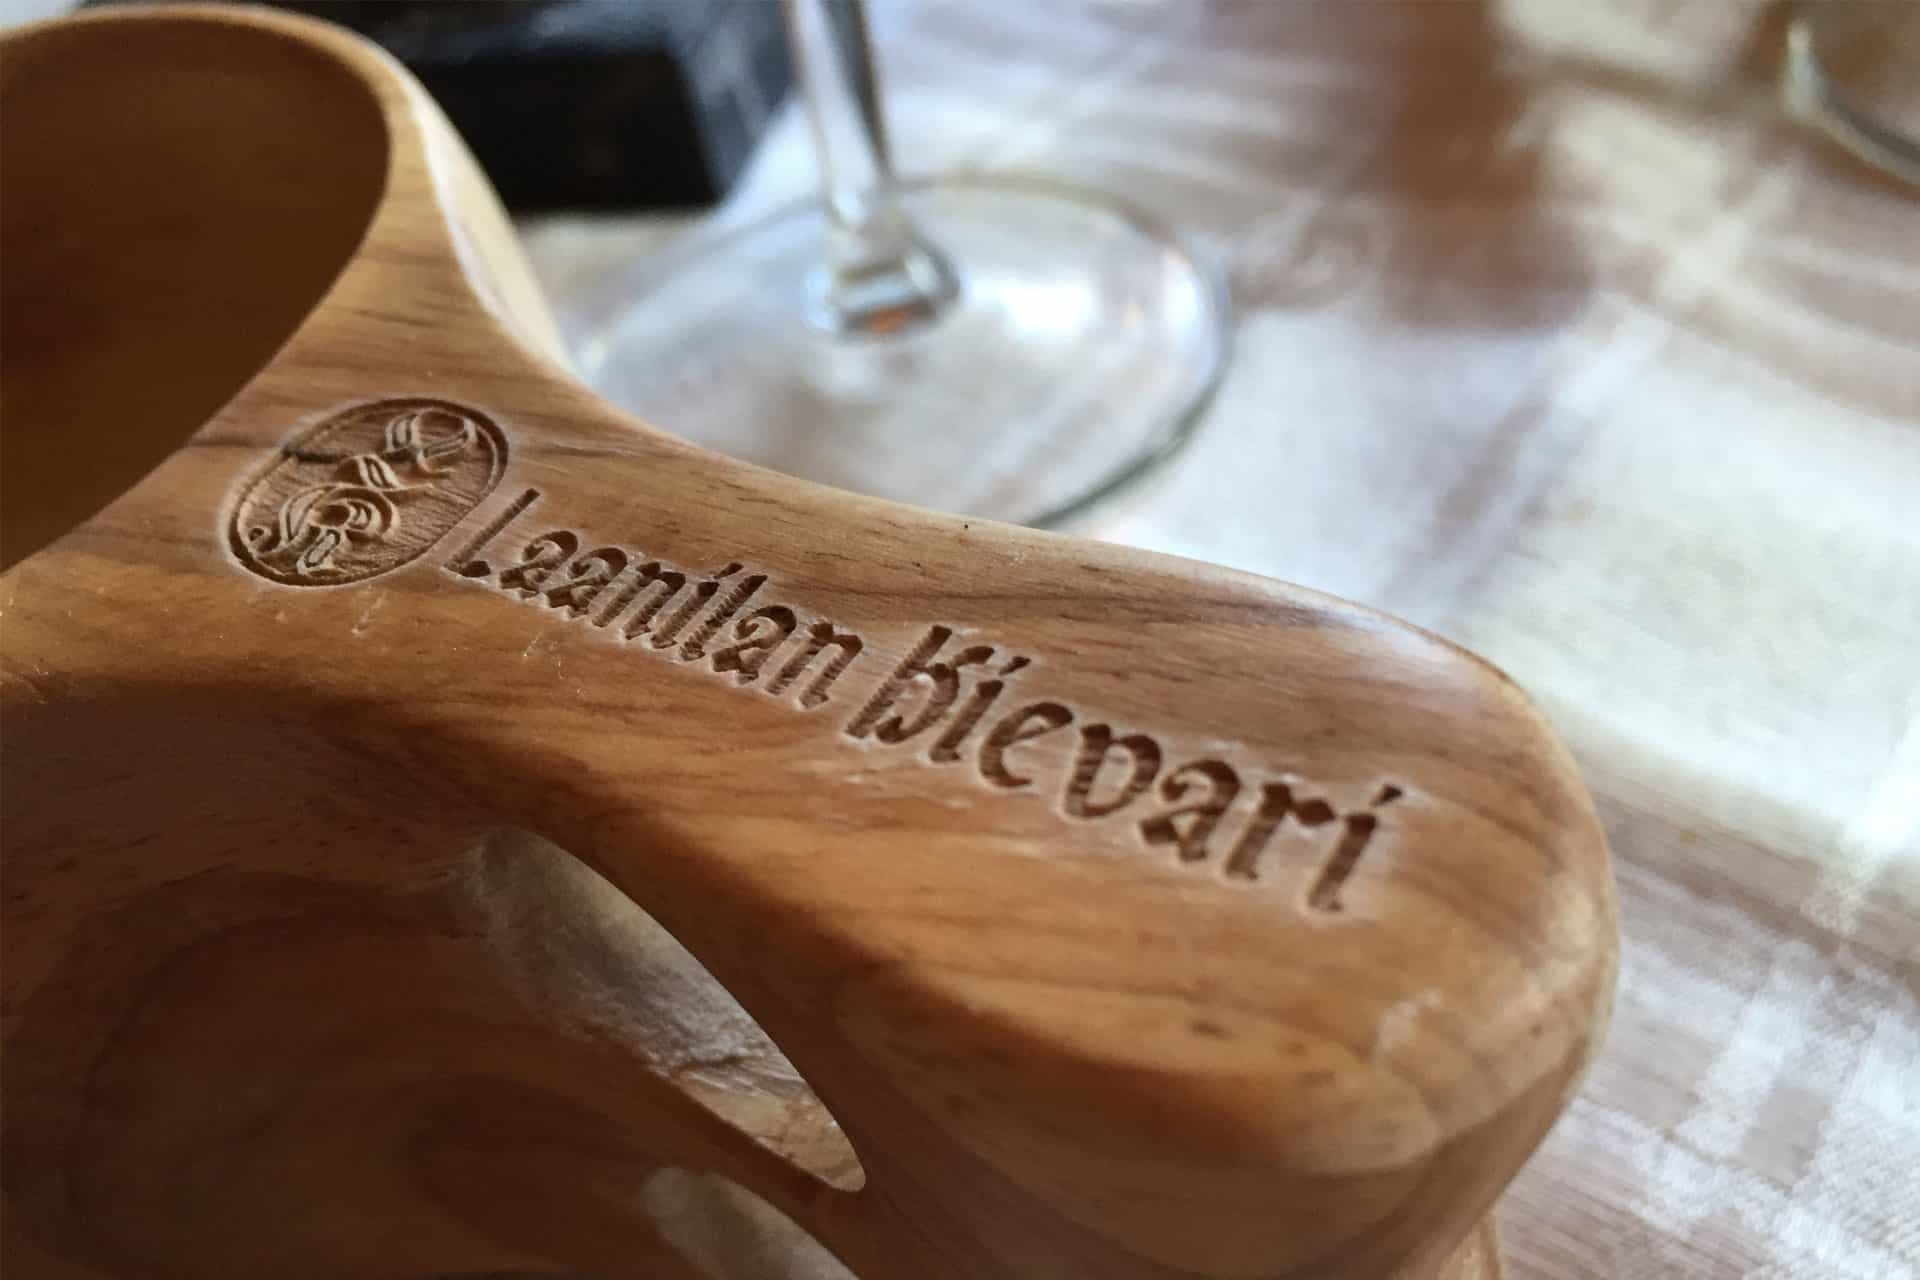 The restaurant Name is craved on a traditional finnish cup Kuksa - Laanilan Kievari